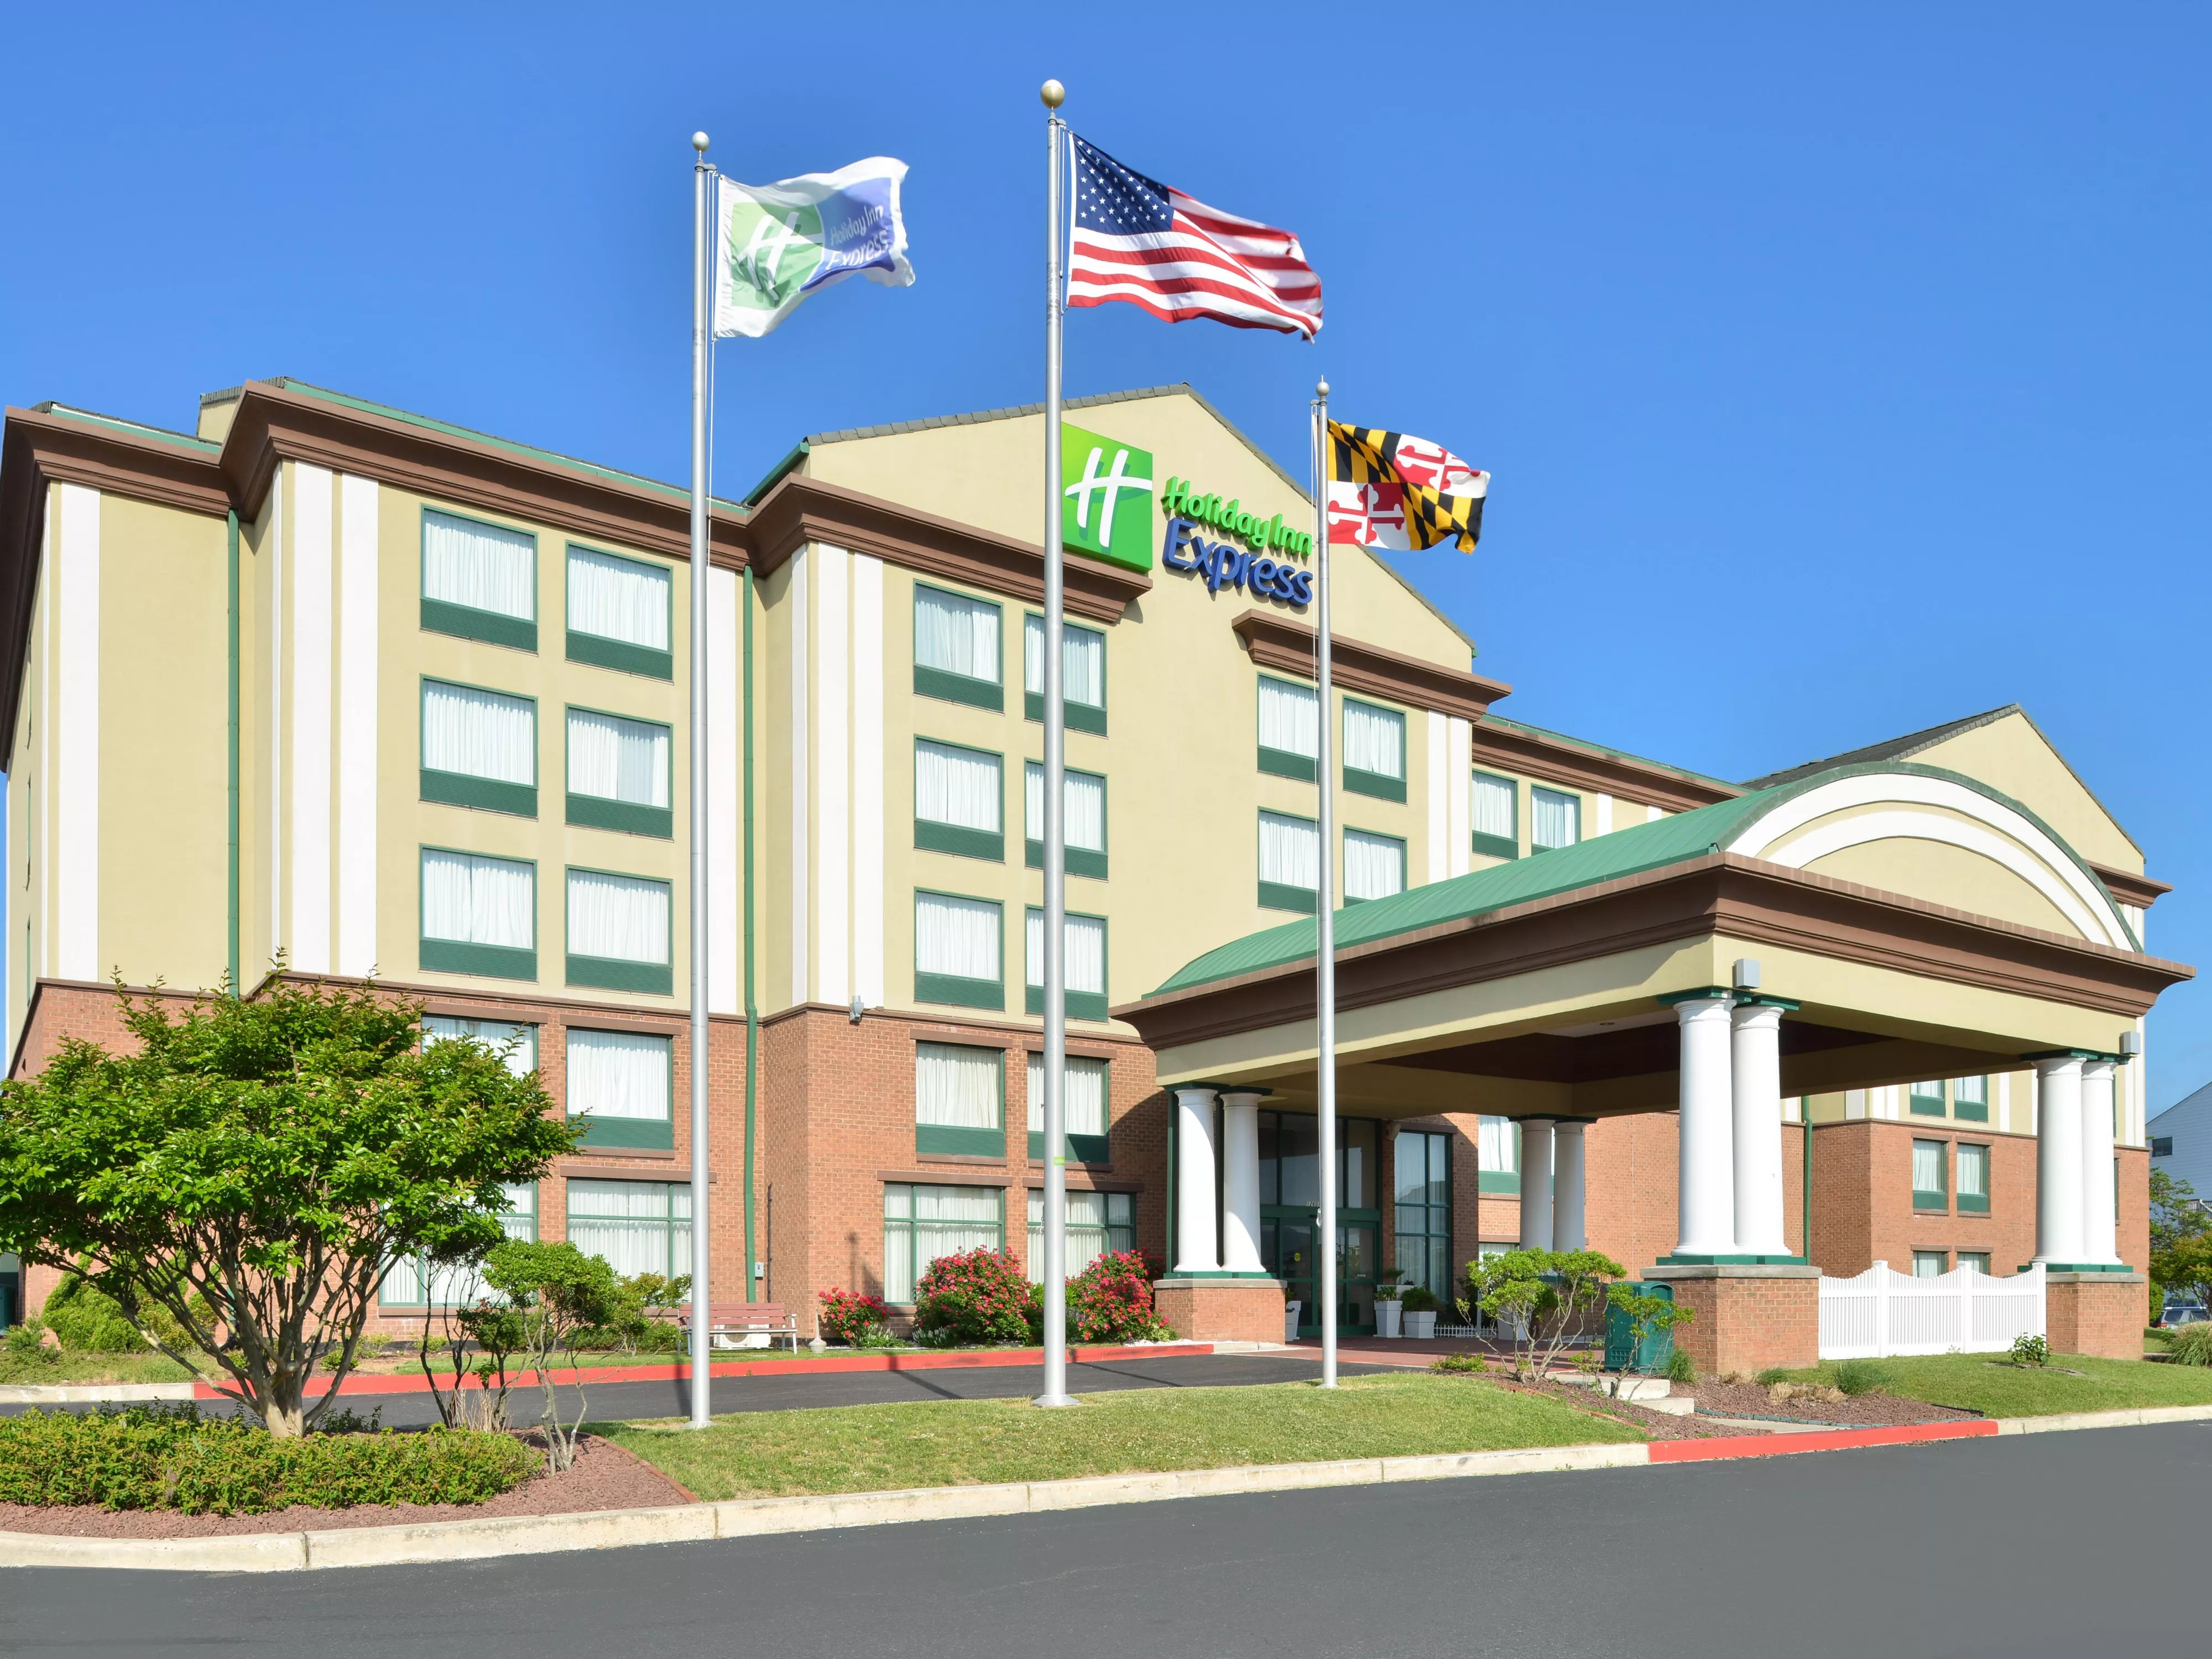 Hotel Rehoboth Holiday Inn Express Bethany Beach Hotels Budget Hotels In